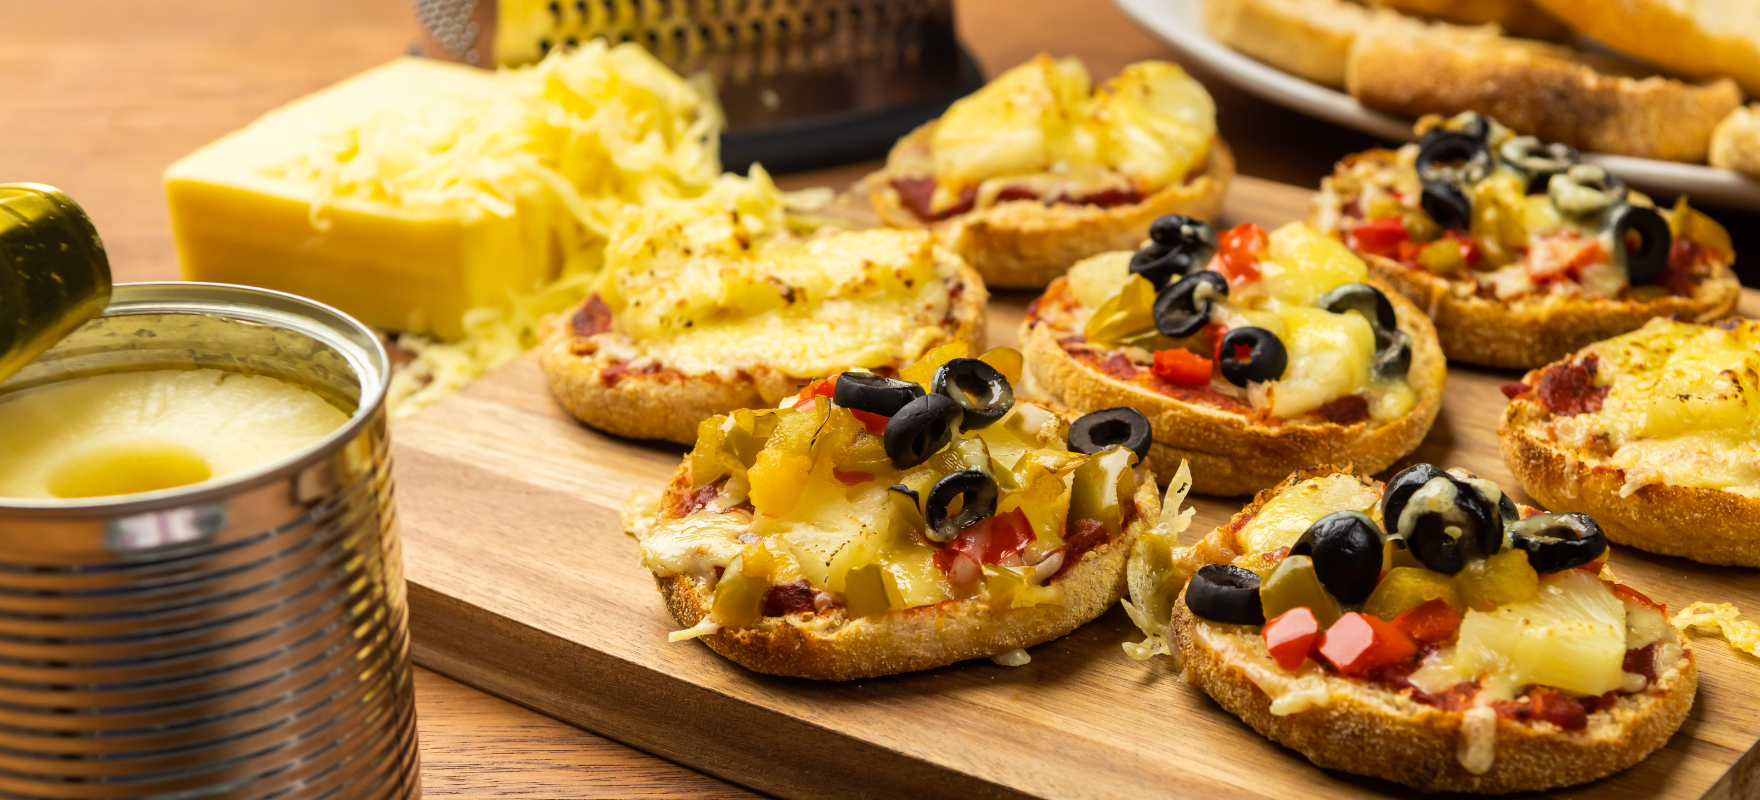 Pizza muffins image 1